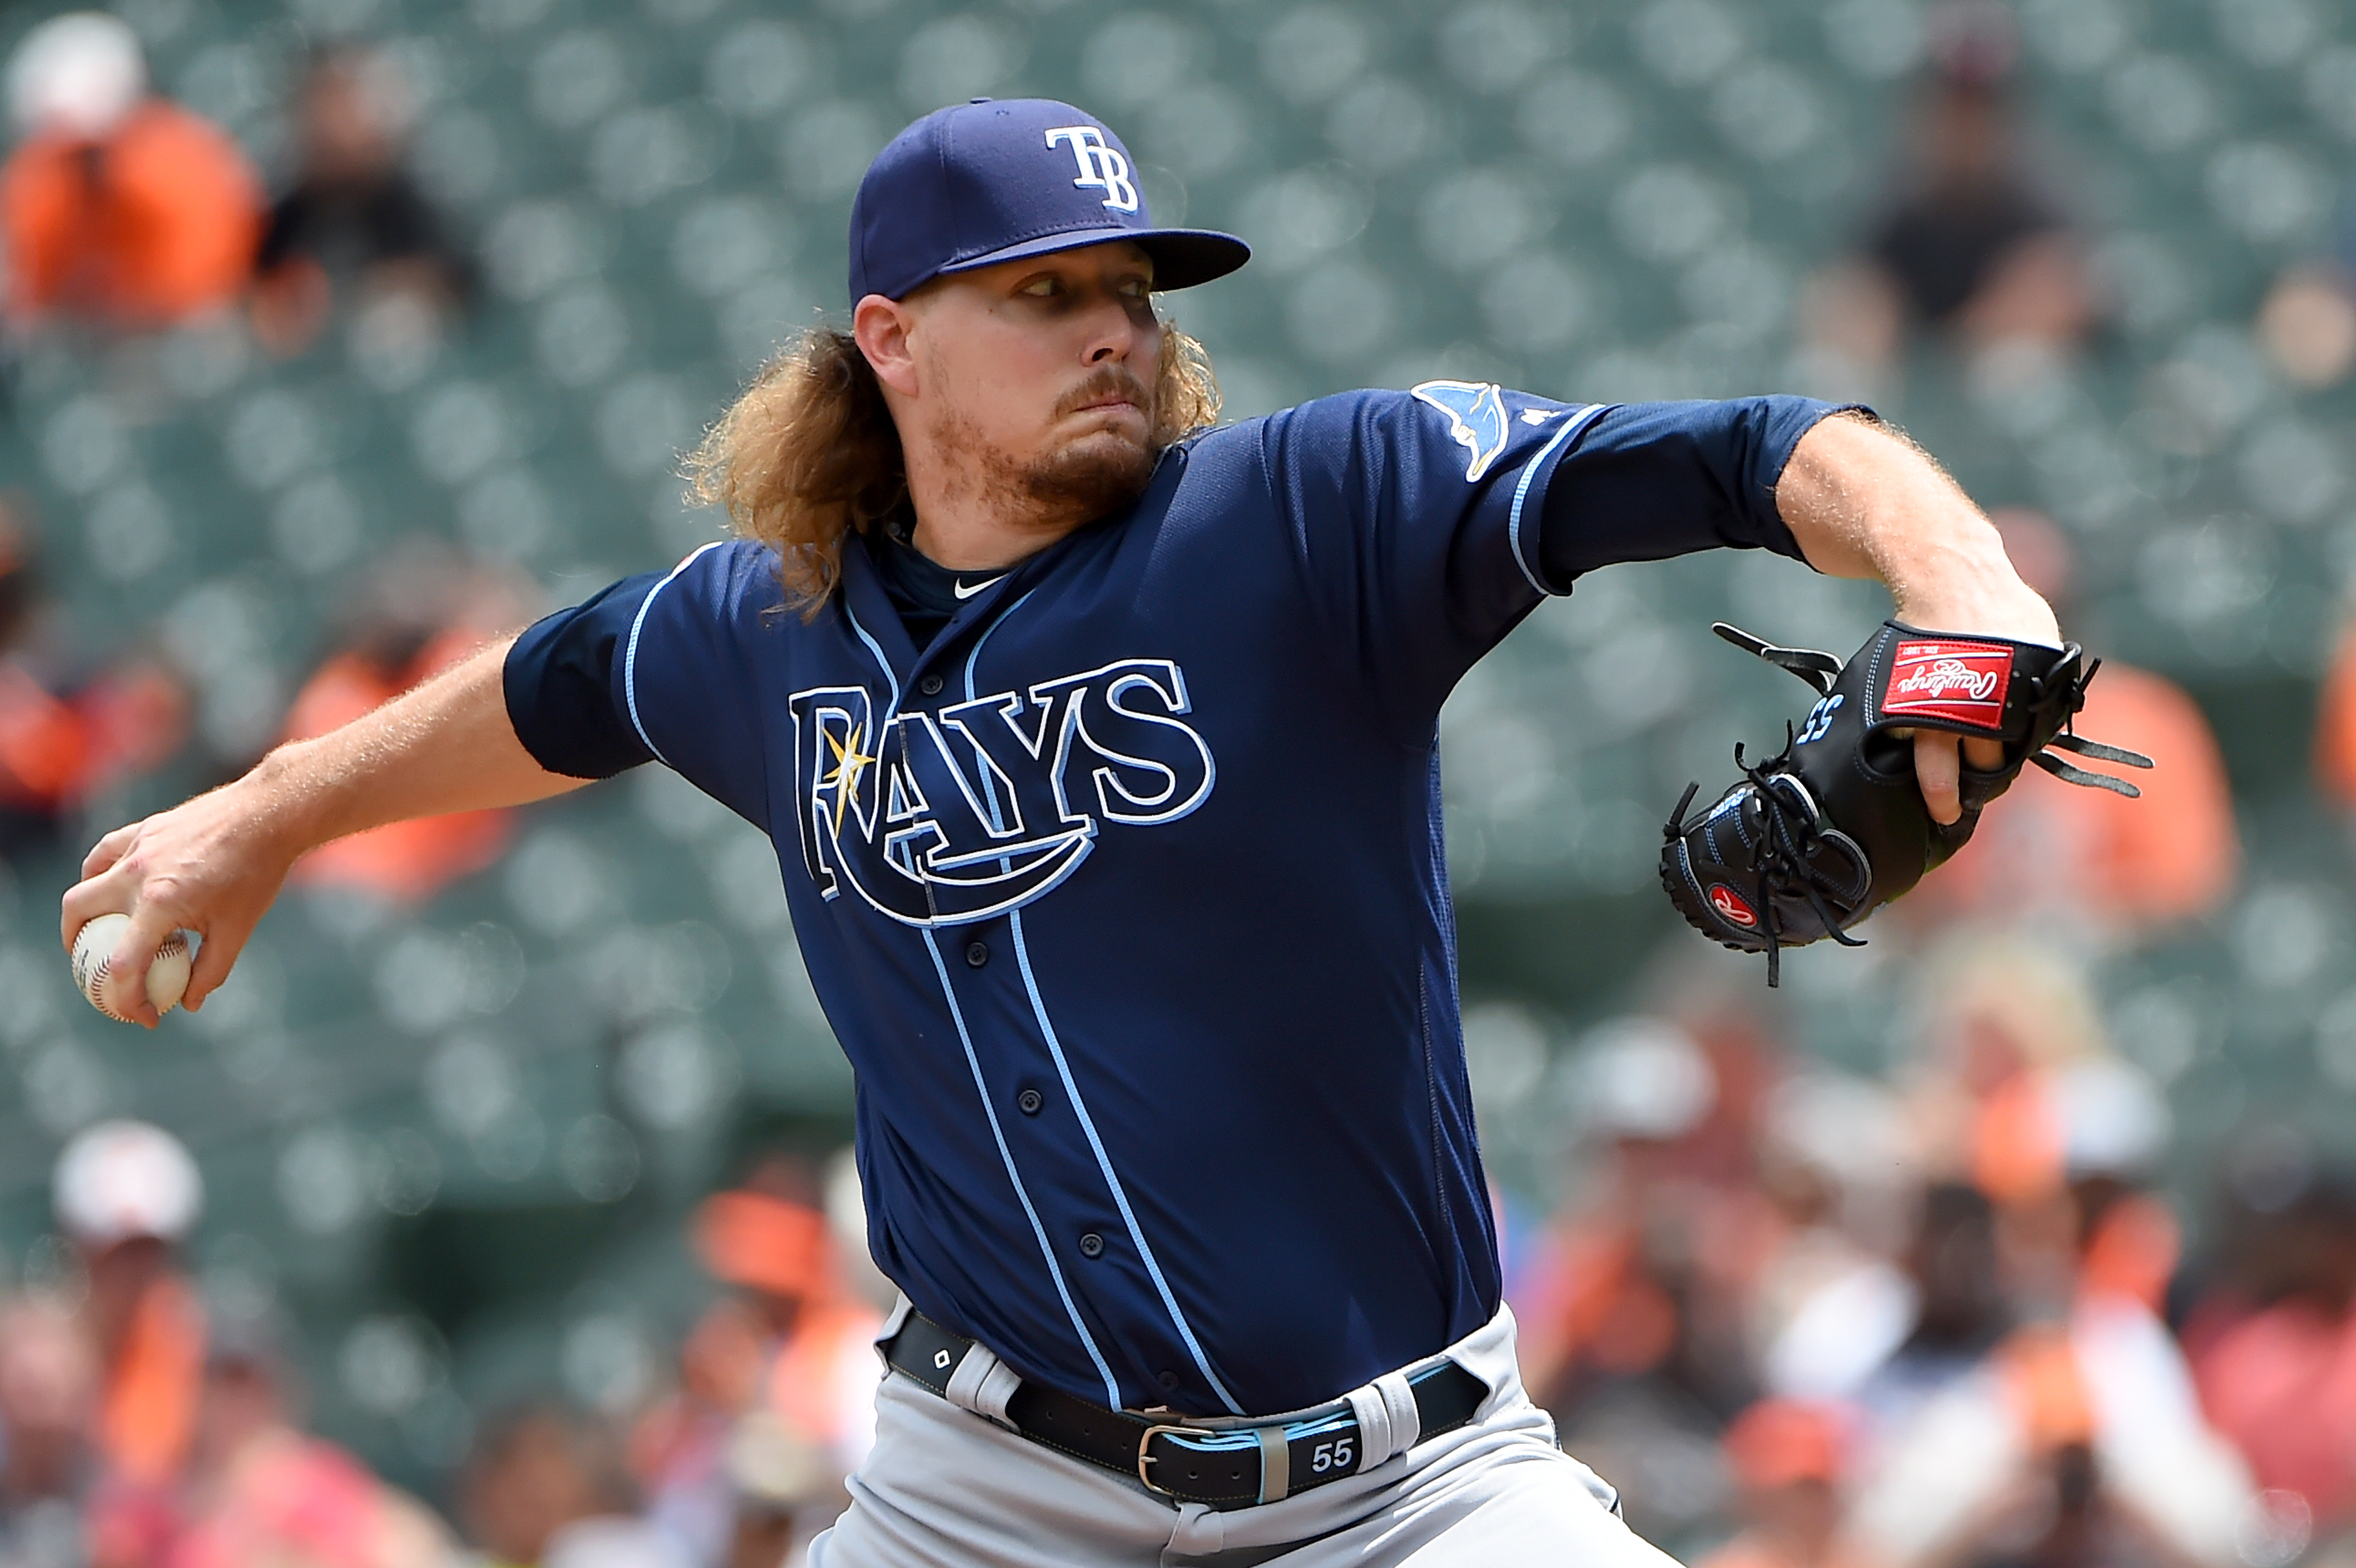 Rays' Ryne Stanek is making history in opener role - The